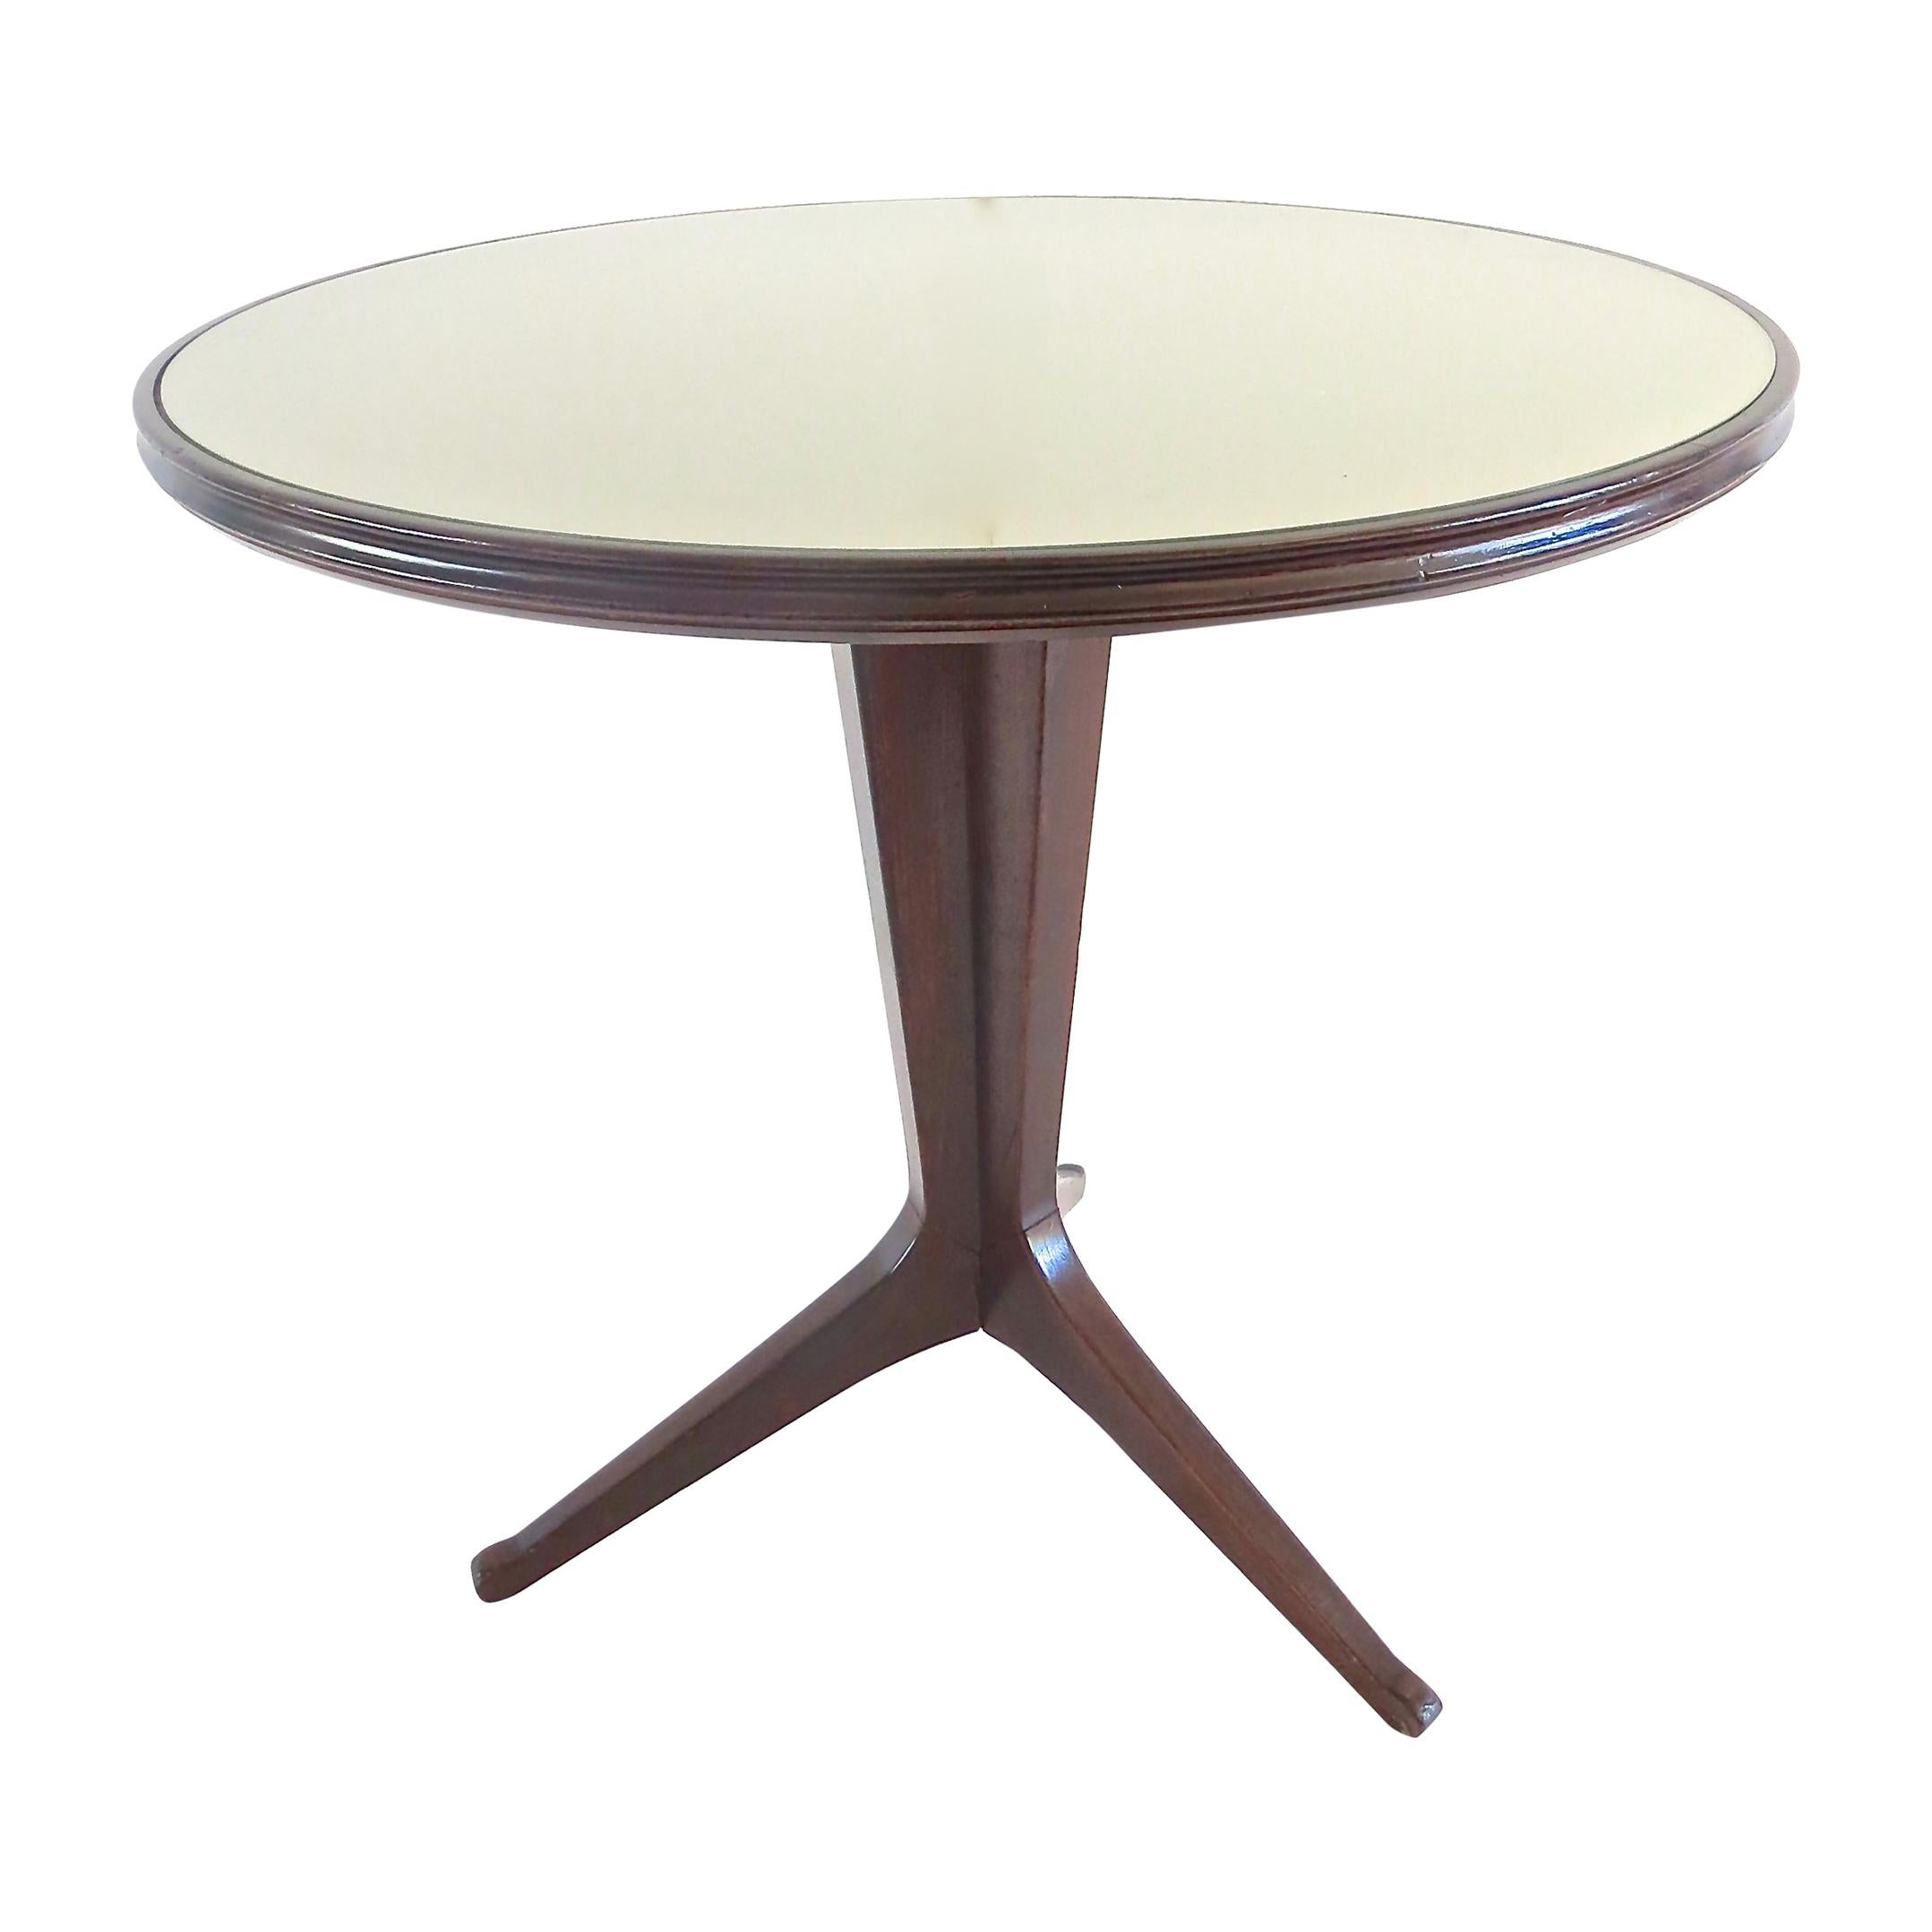 Round Walnut Center Table Attributed to Ico Parisi, 1950